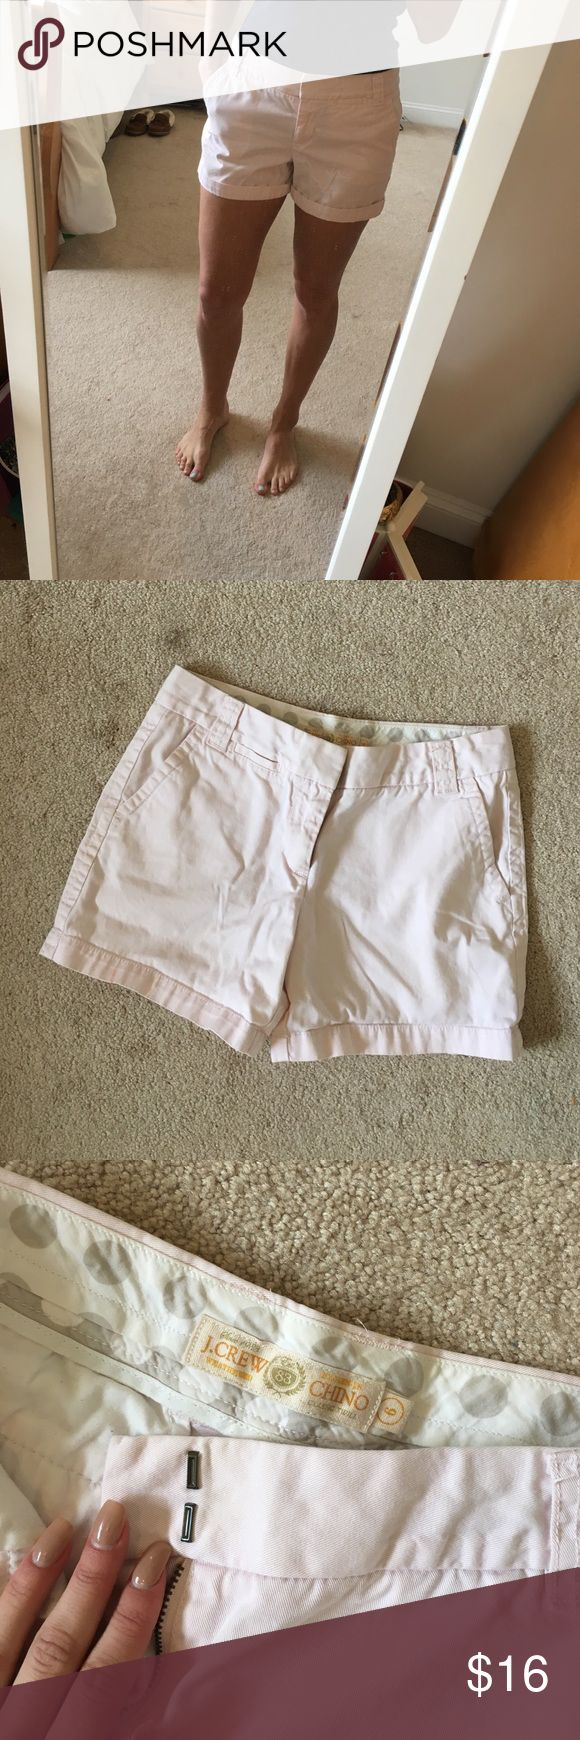 J.Crew shorts - WILL BUNDLE! J.Crew classic shorts, light pink color. Cuffed up once in picture where I am wearing them. Again, size 6 but J.Crew runs slim. Would definitely consider bundling with my other J.Crew OR J.Crew-style shorts! J. Crew Shorts